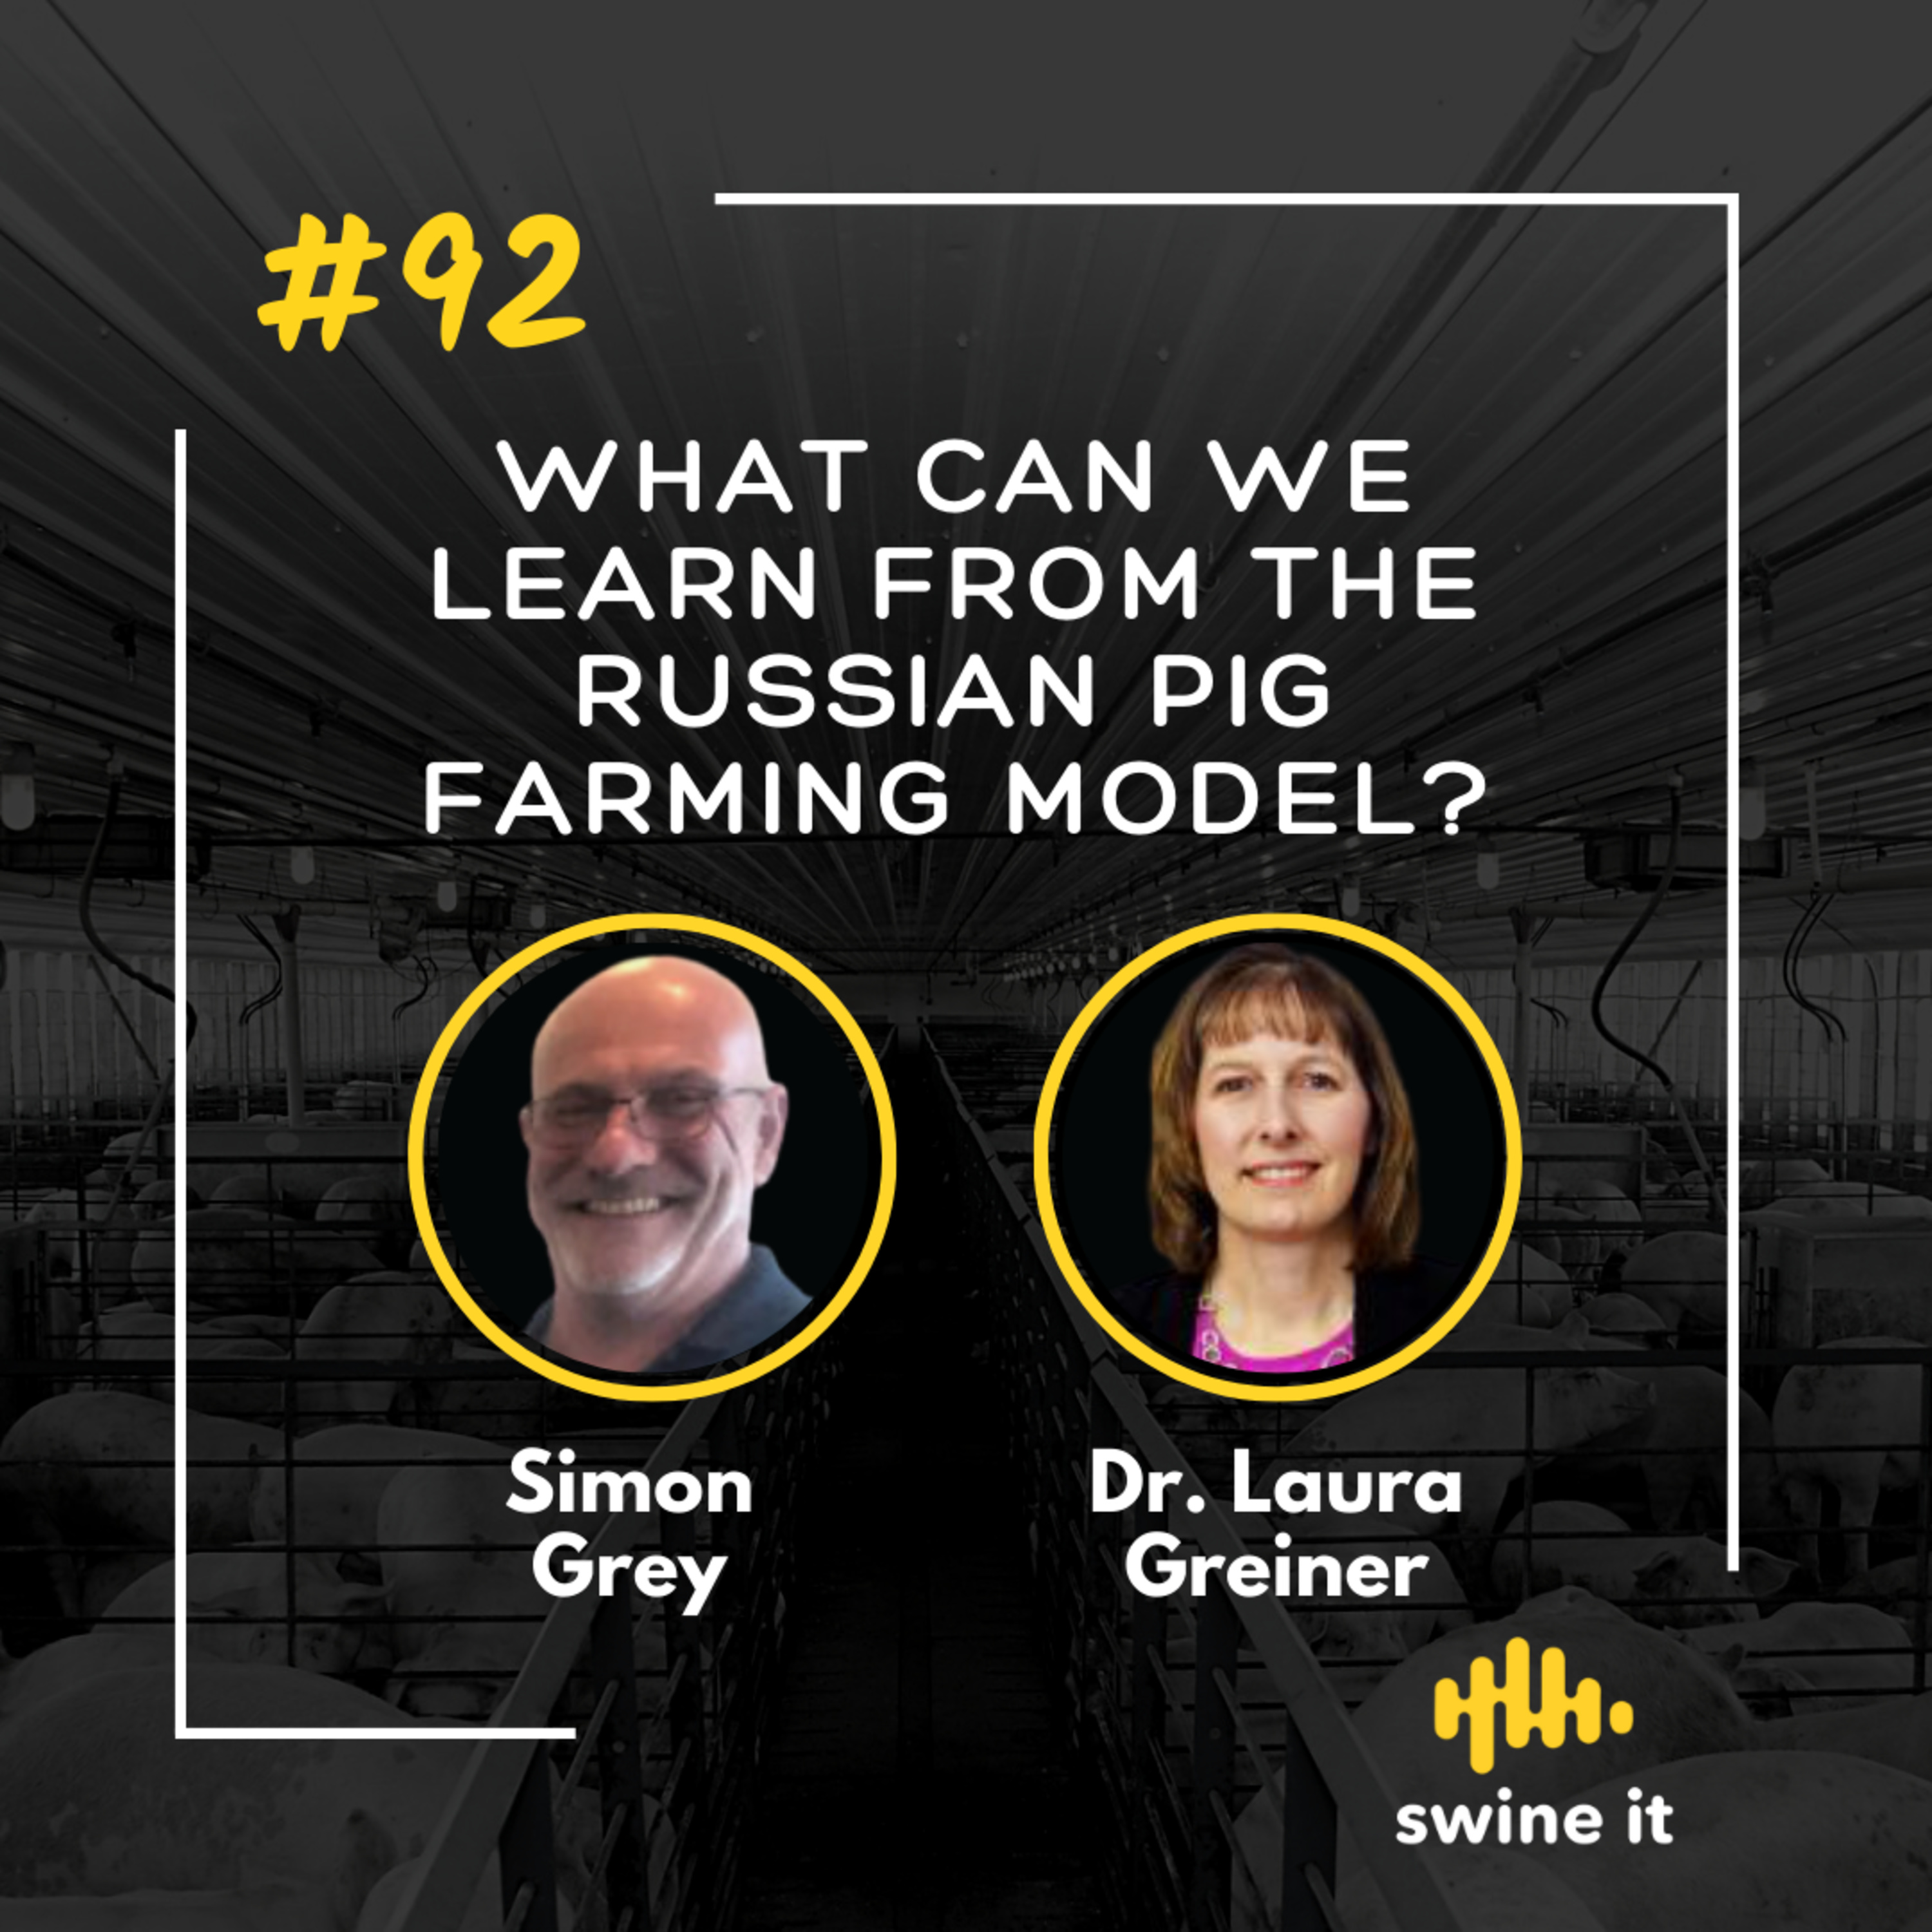 What can we learn from the Russian pig farming model? - Simon Grey